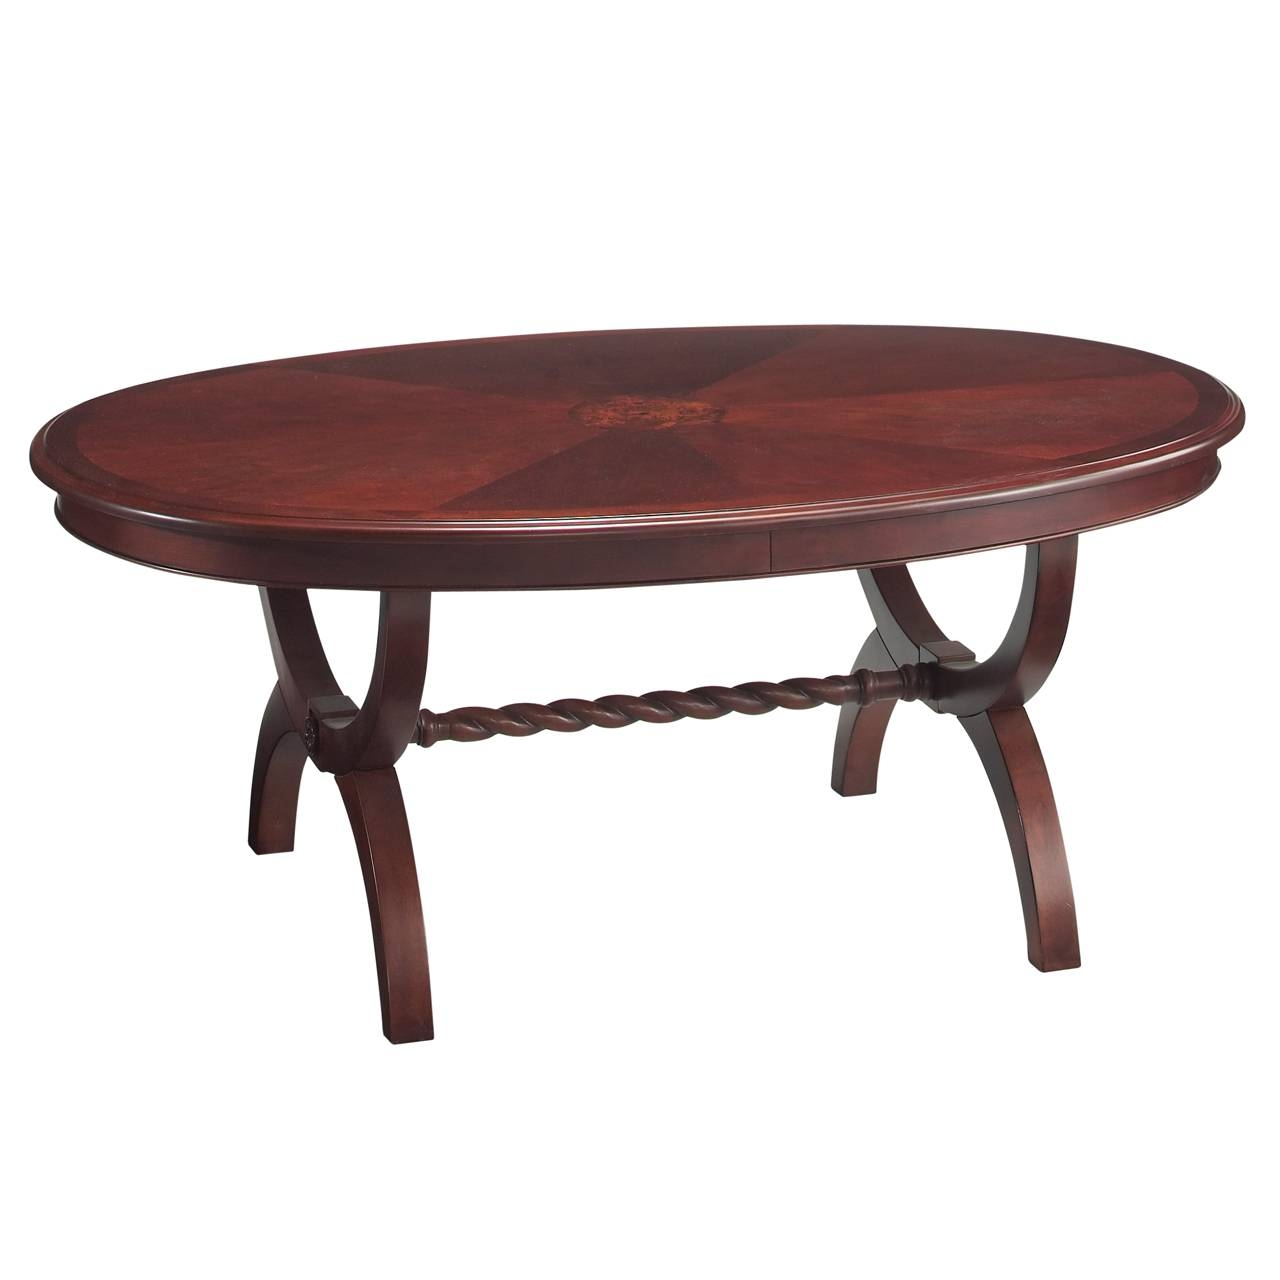 Townsend Oval Coffee Table – Bombay Canada pertaining to Bombay Coffee Tables (Image 29 of 30)